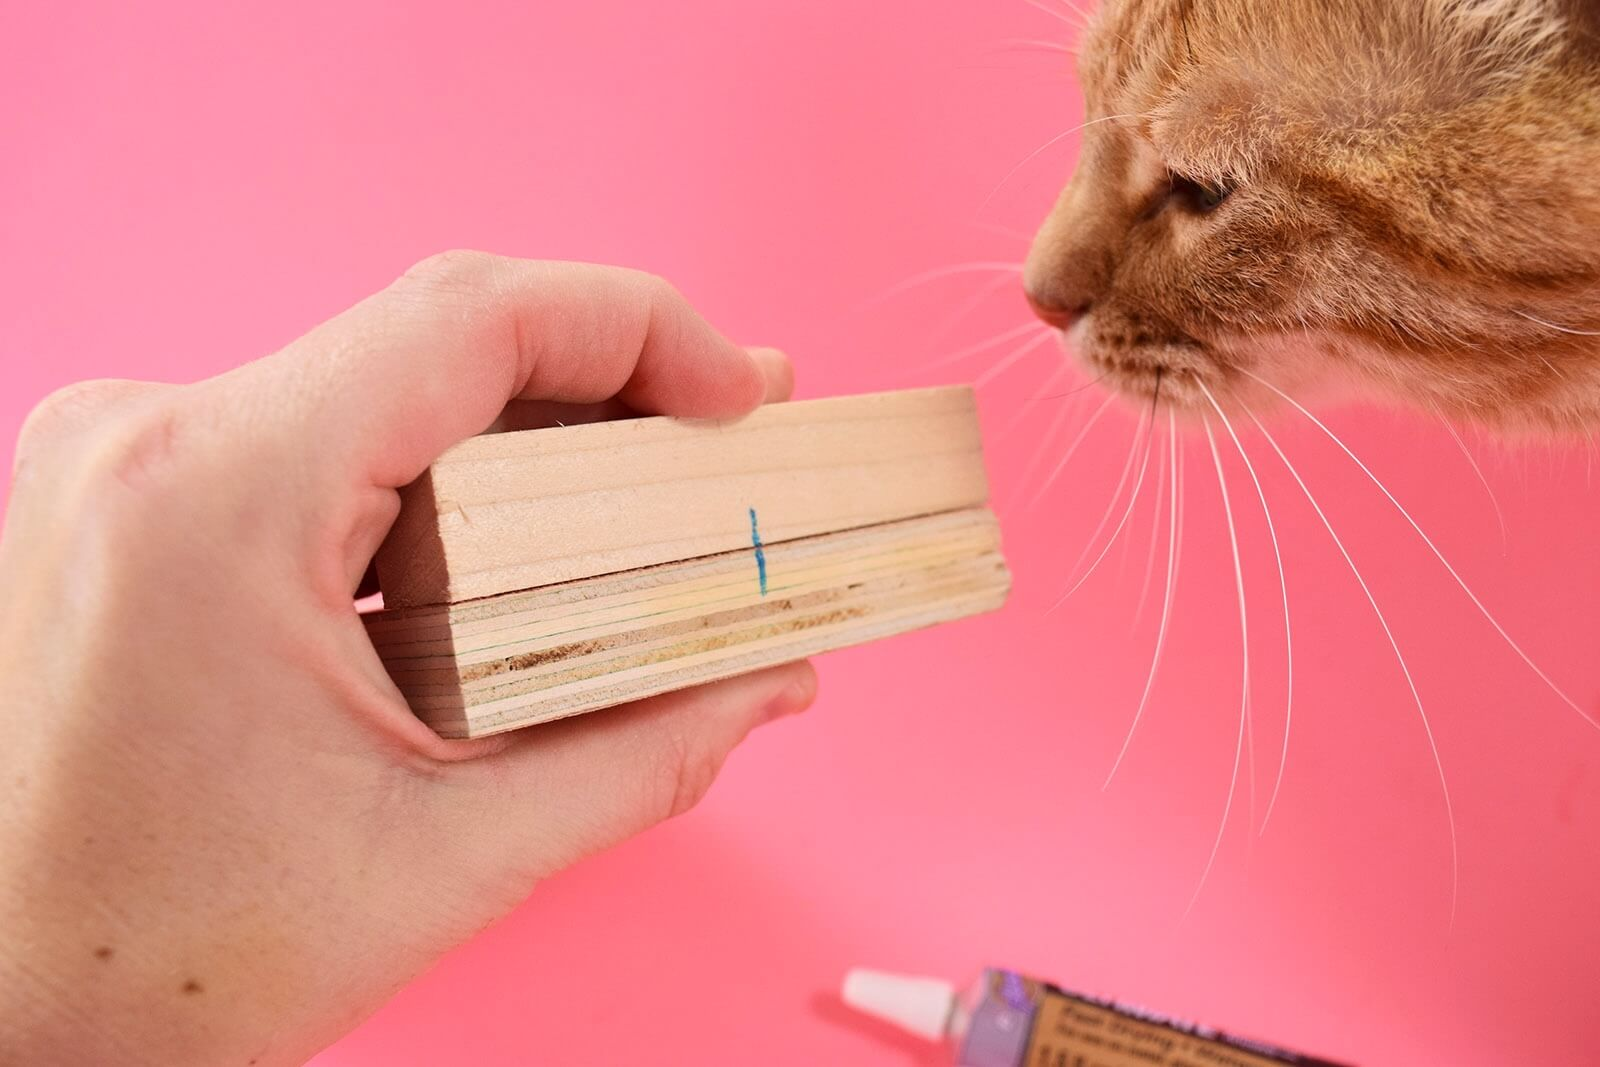 DIY Cat Shaped Smart Phone Holder from Wood Step 3